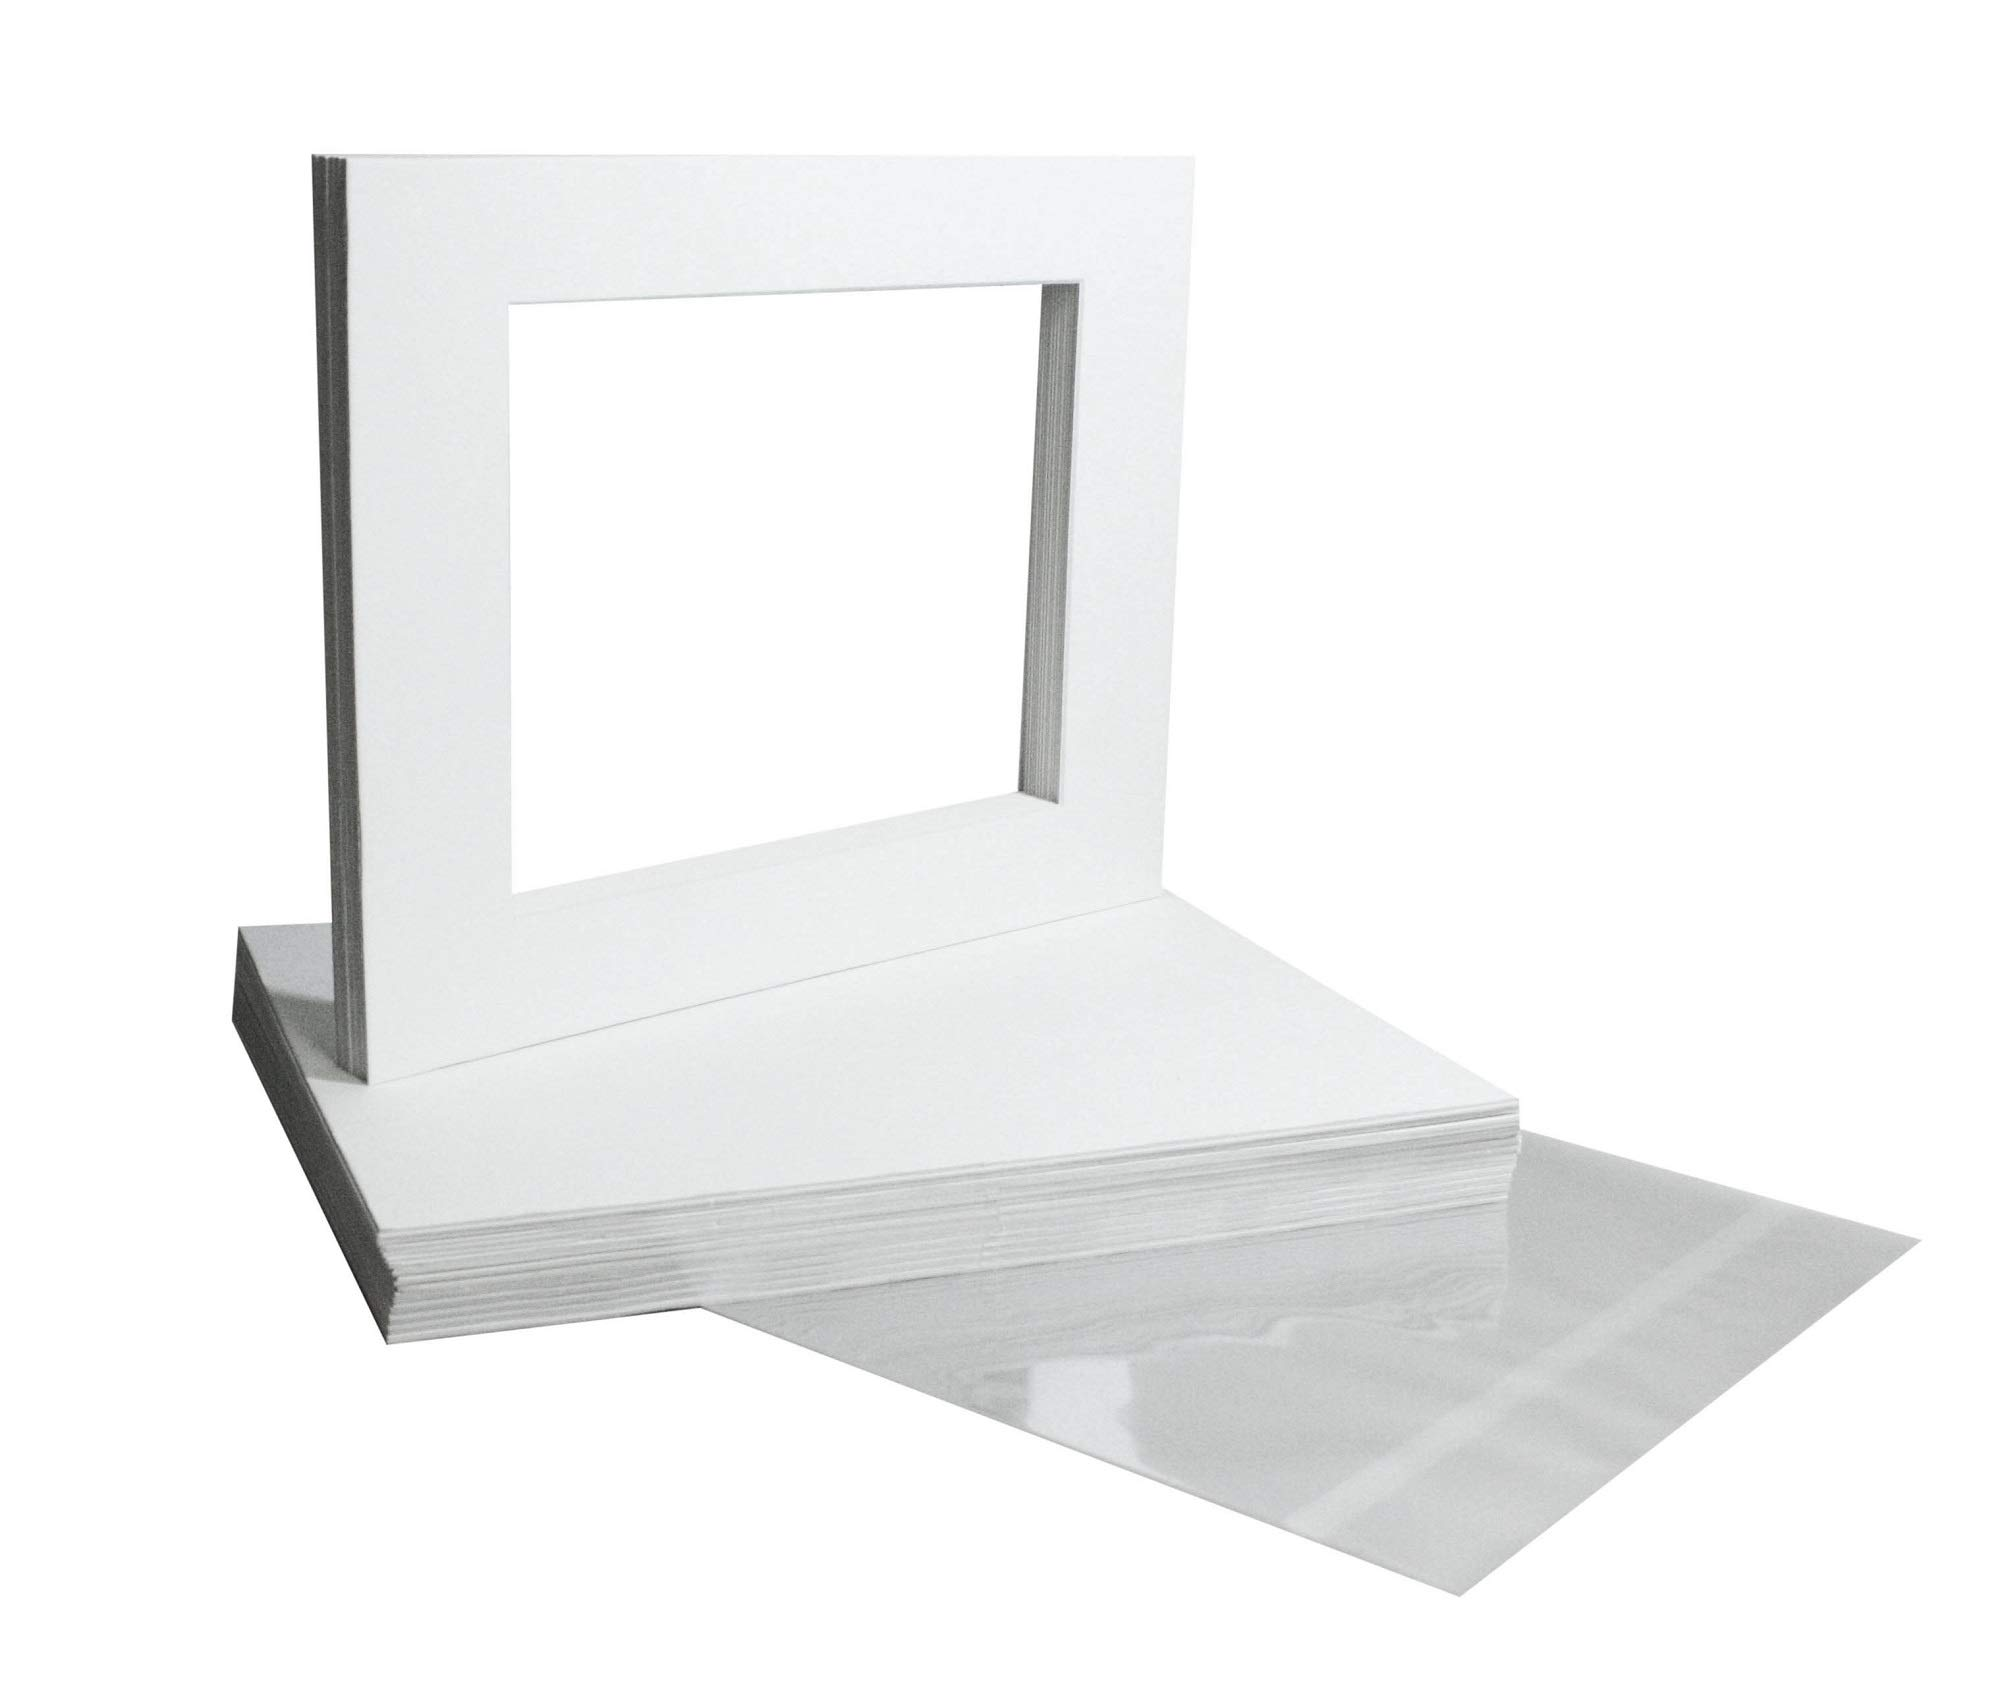 Golden State Art, Pack of 20 White Pre-cut 11x14 Picture Mat for 8.5x11 Photo with White Core Matte Sets. Includes 20 High Premier Acid Free Bevel Cut Mattes & 20 Backing Backers Board & 20 Clear Bags